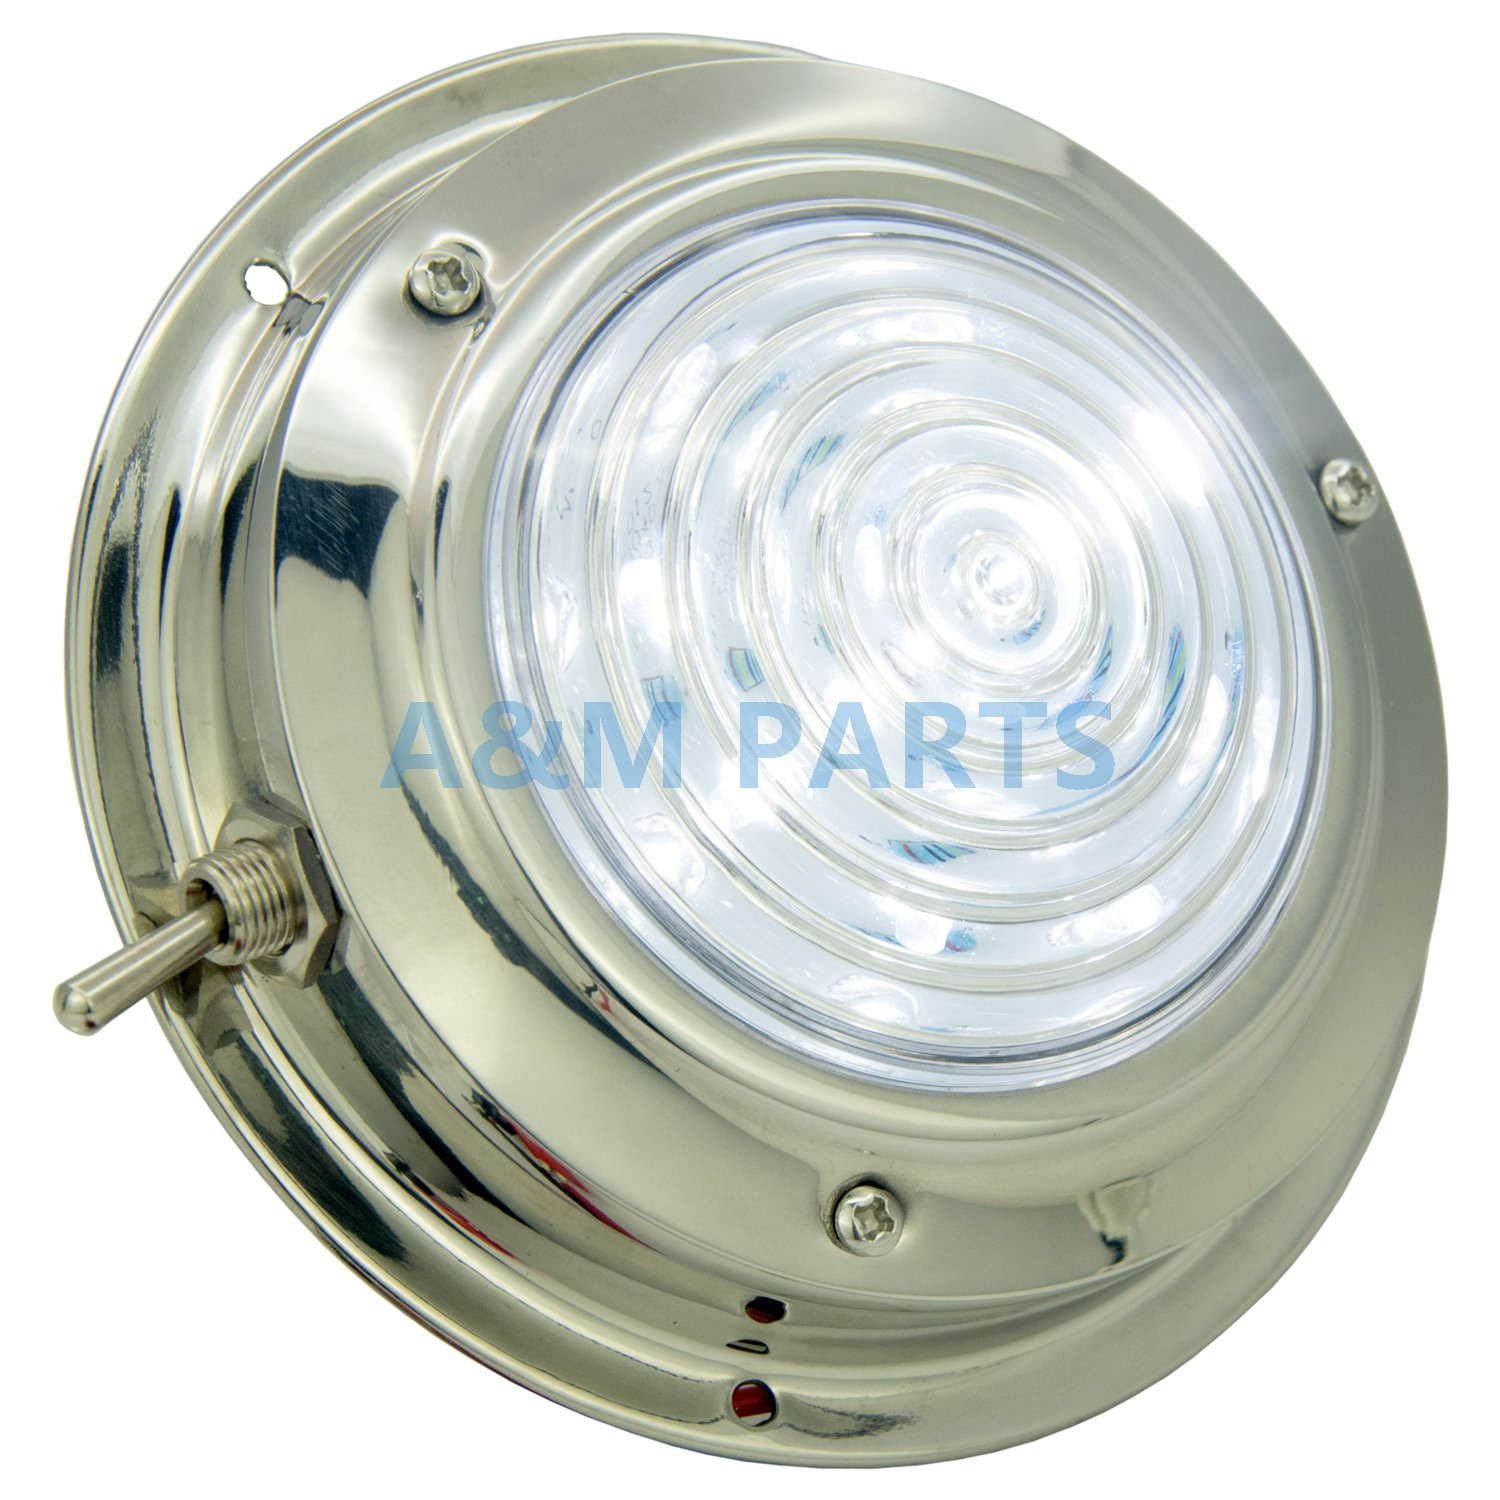 цена на LED Dome Light With Switch 12V Boat Caravan Marine RV Cabin Interior Decorative Lamp Stainless Steel Housing 4.5 inch Cool White